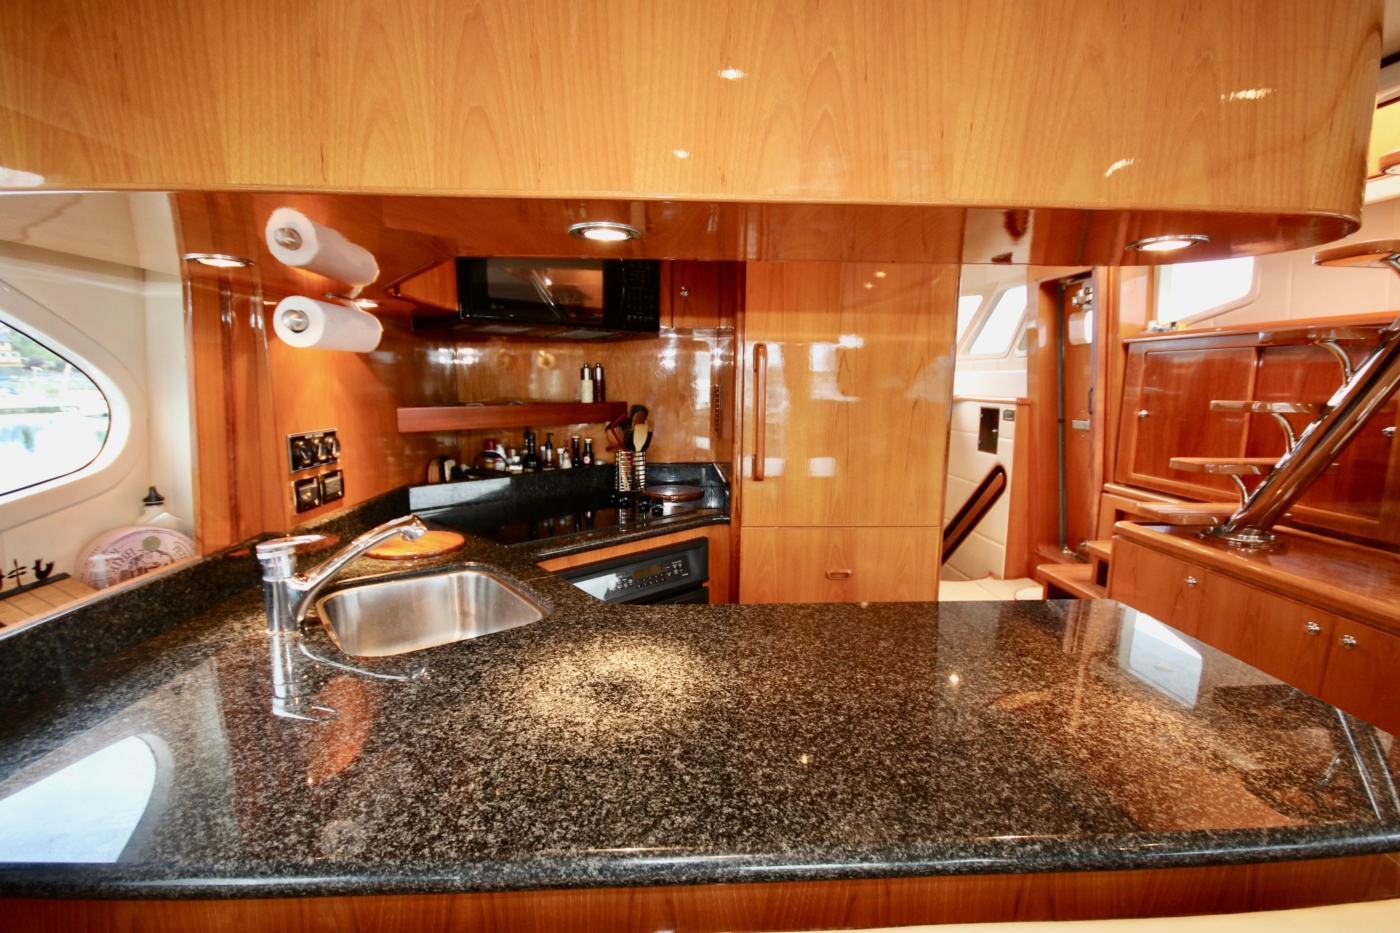 2002 Monte Fino 68, Looking Forward into the Galley